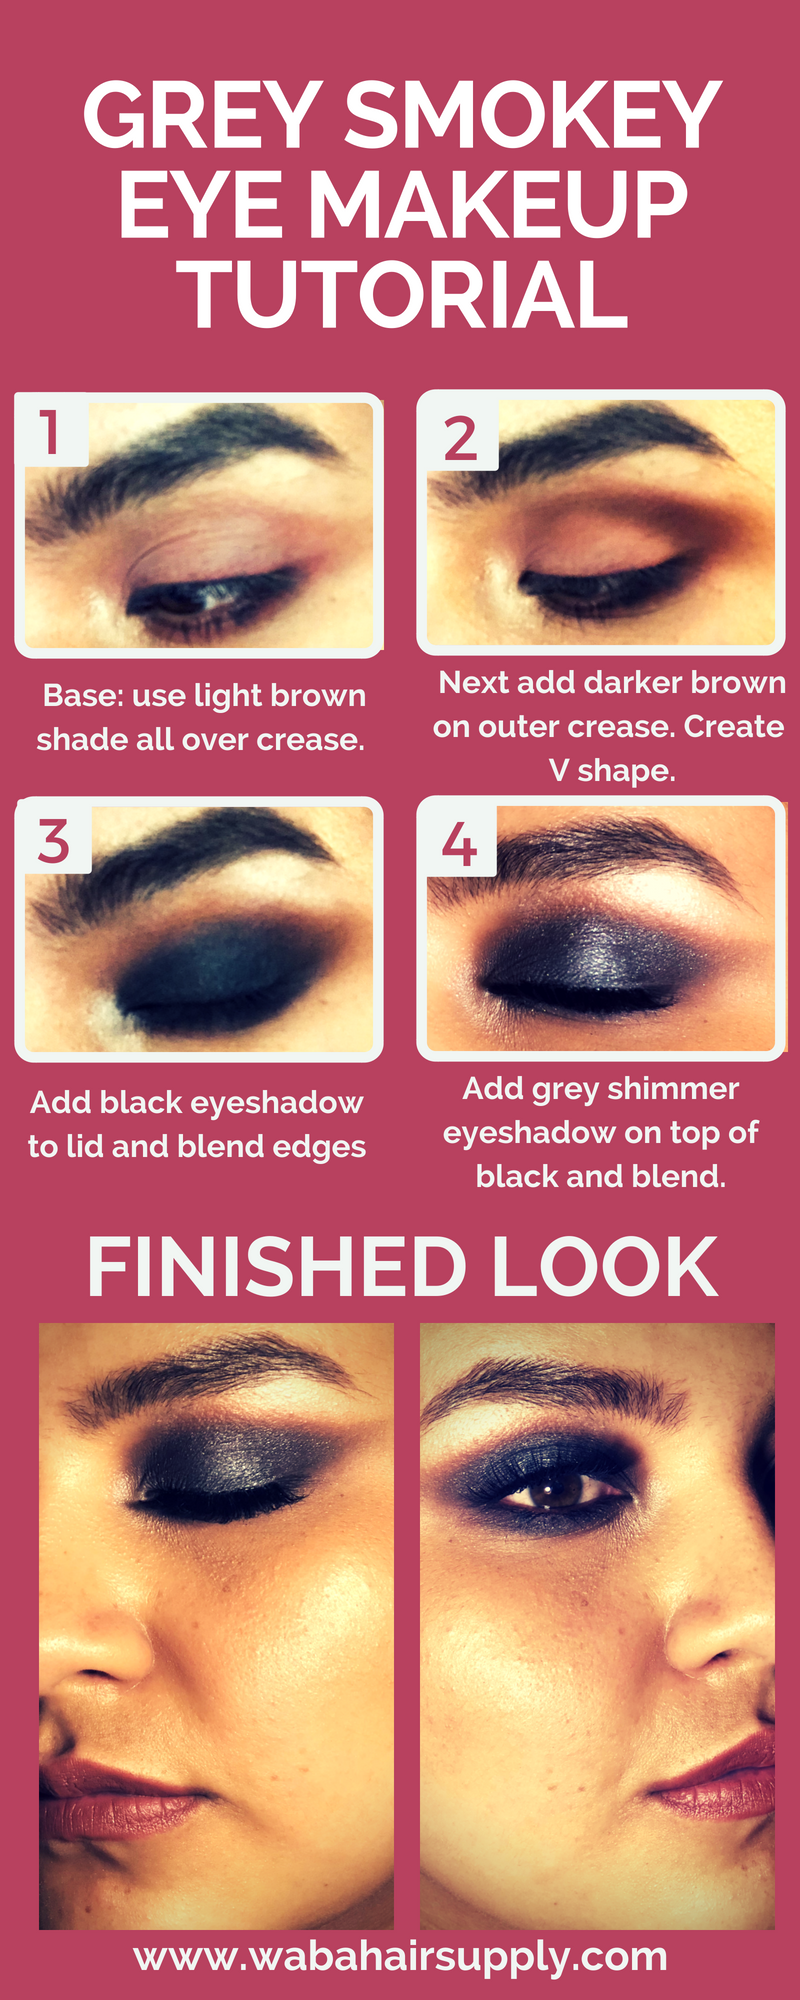 smokey eye makeup infographic by paulina sainz at wabahairsupply